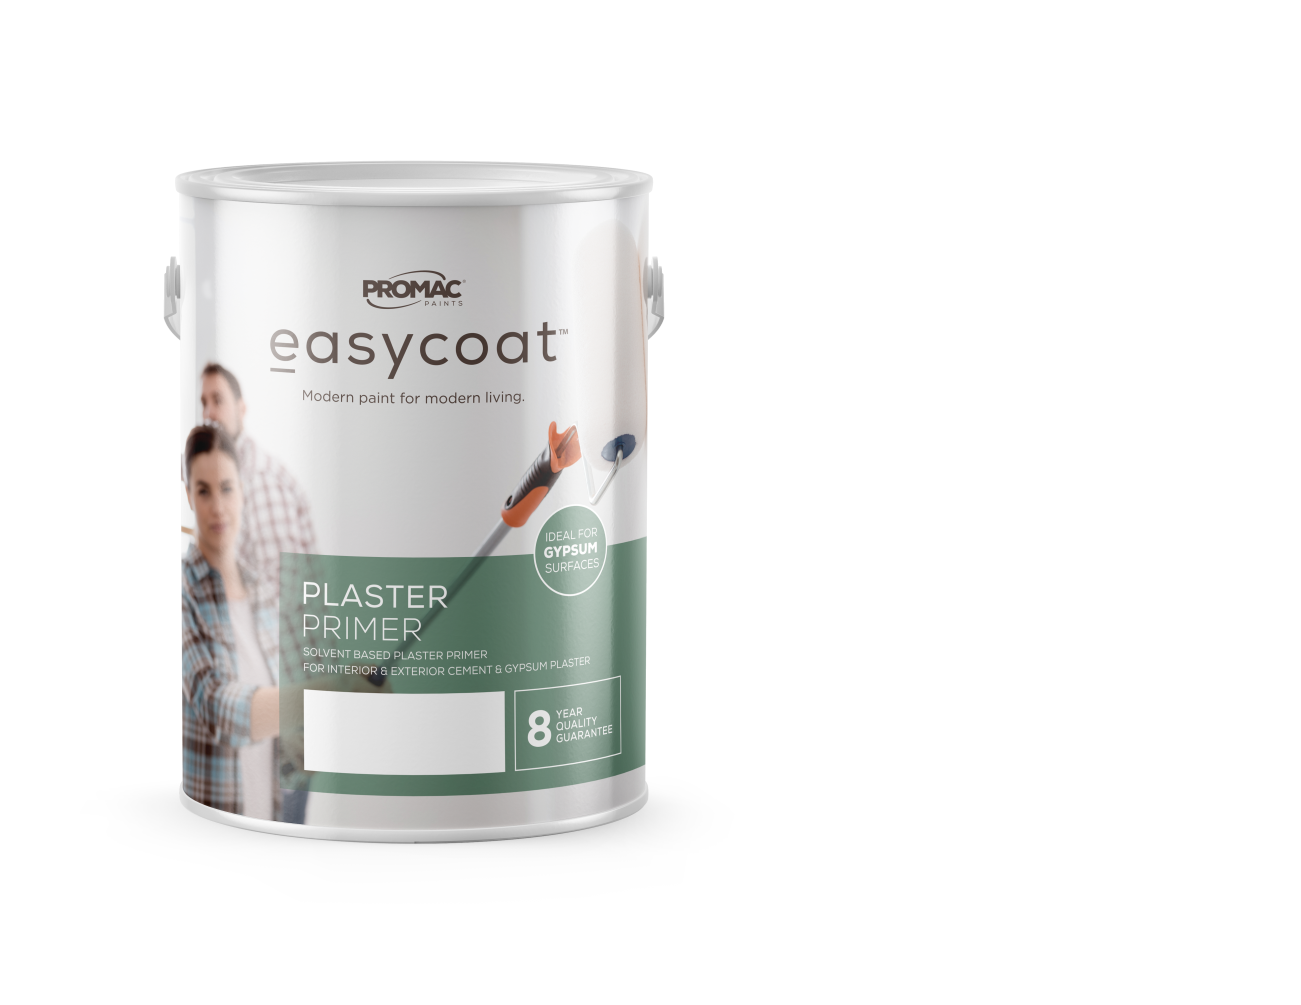 PLASTERPRIMER - SOLVENT BASEDPromac Easycoat Plaster Primer is a solvent based plaster primer which penetrates the surface and ensures optimum adhesion of top coats to the surface, while providing protection against alkali and efflorescence.